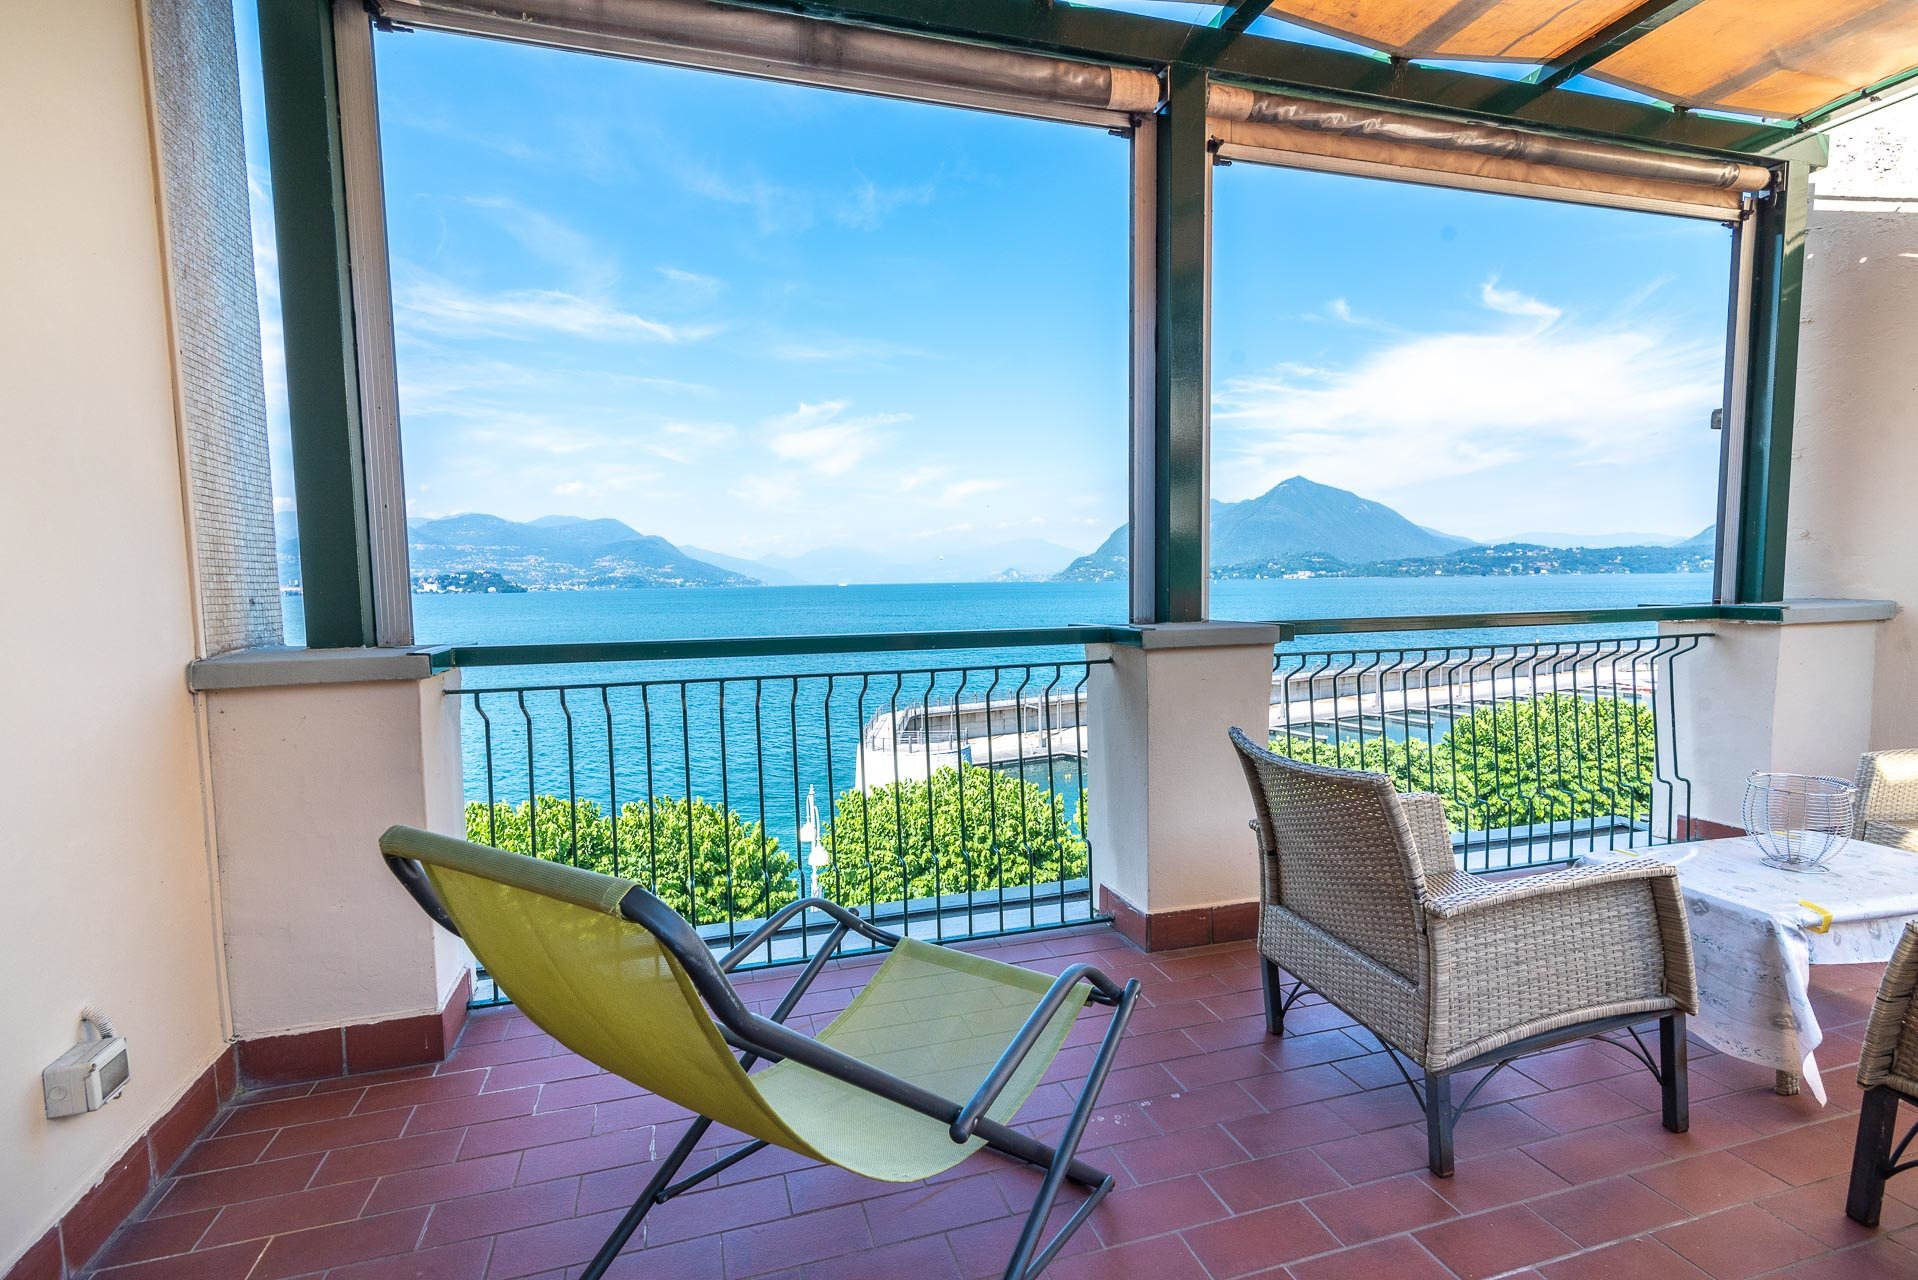 Building with apartments for sale in Stresa